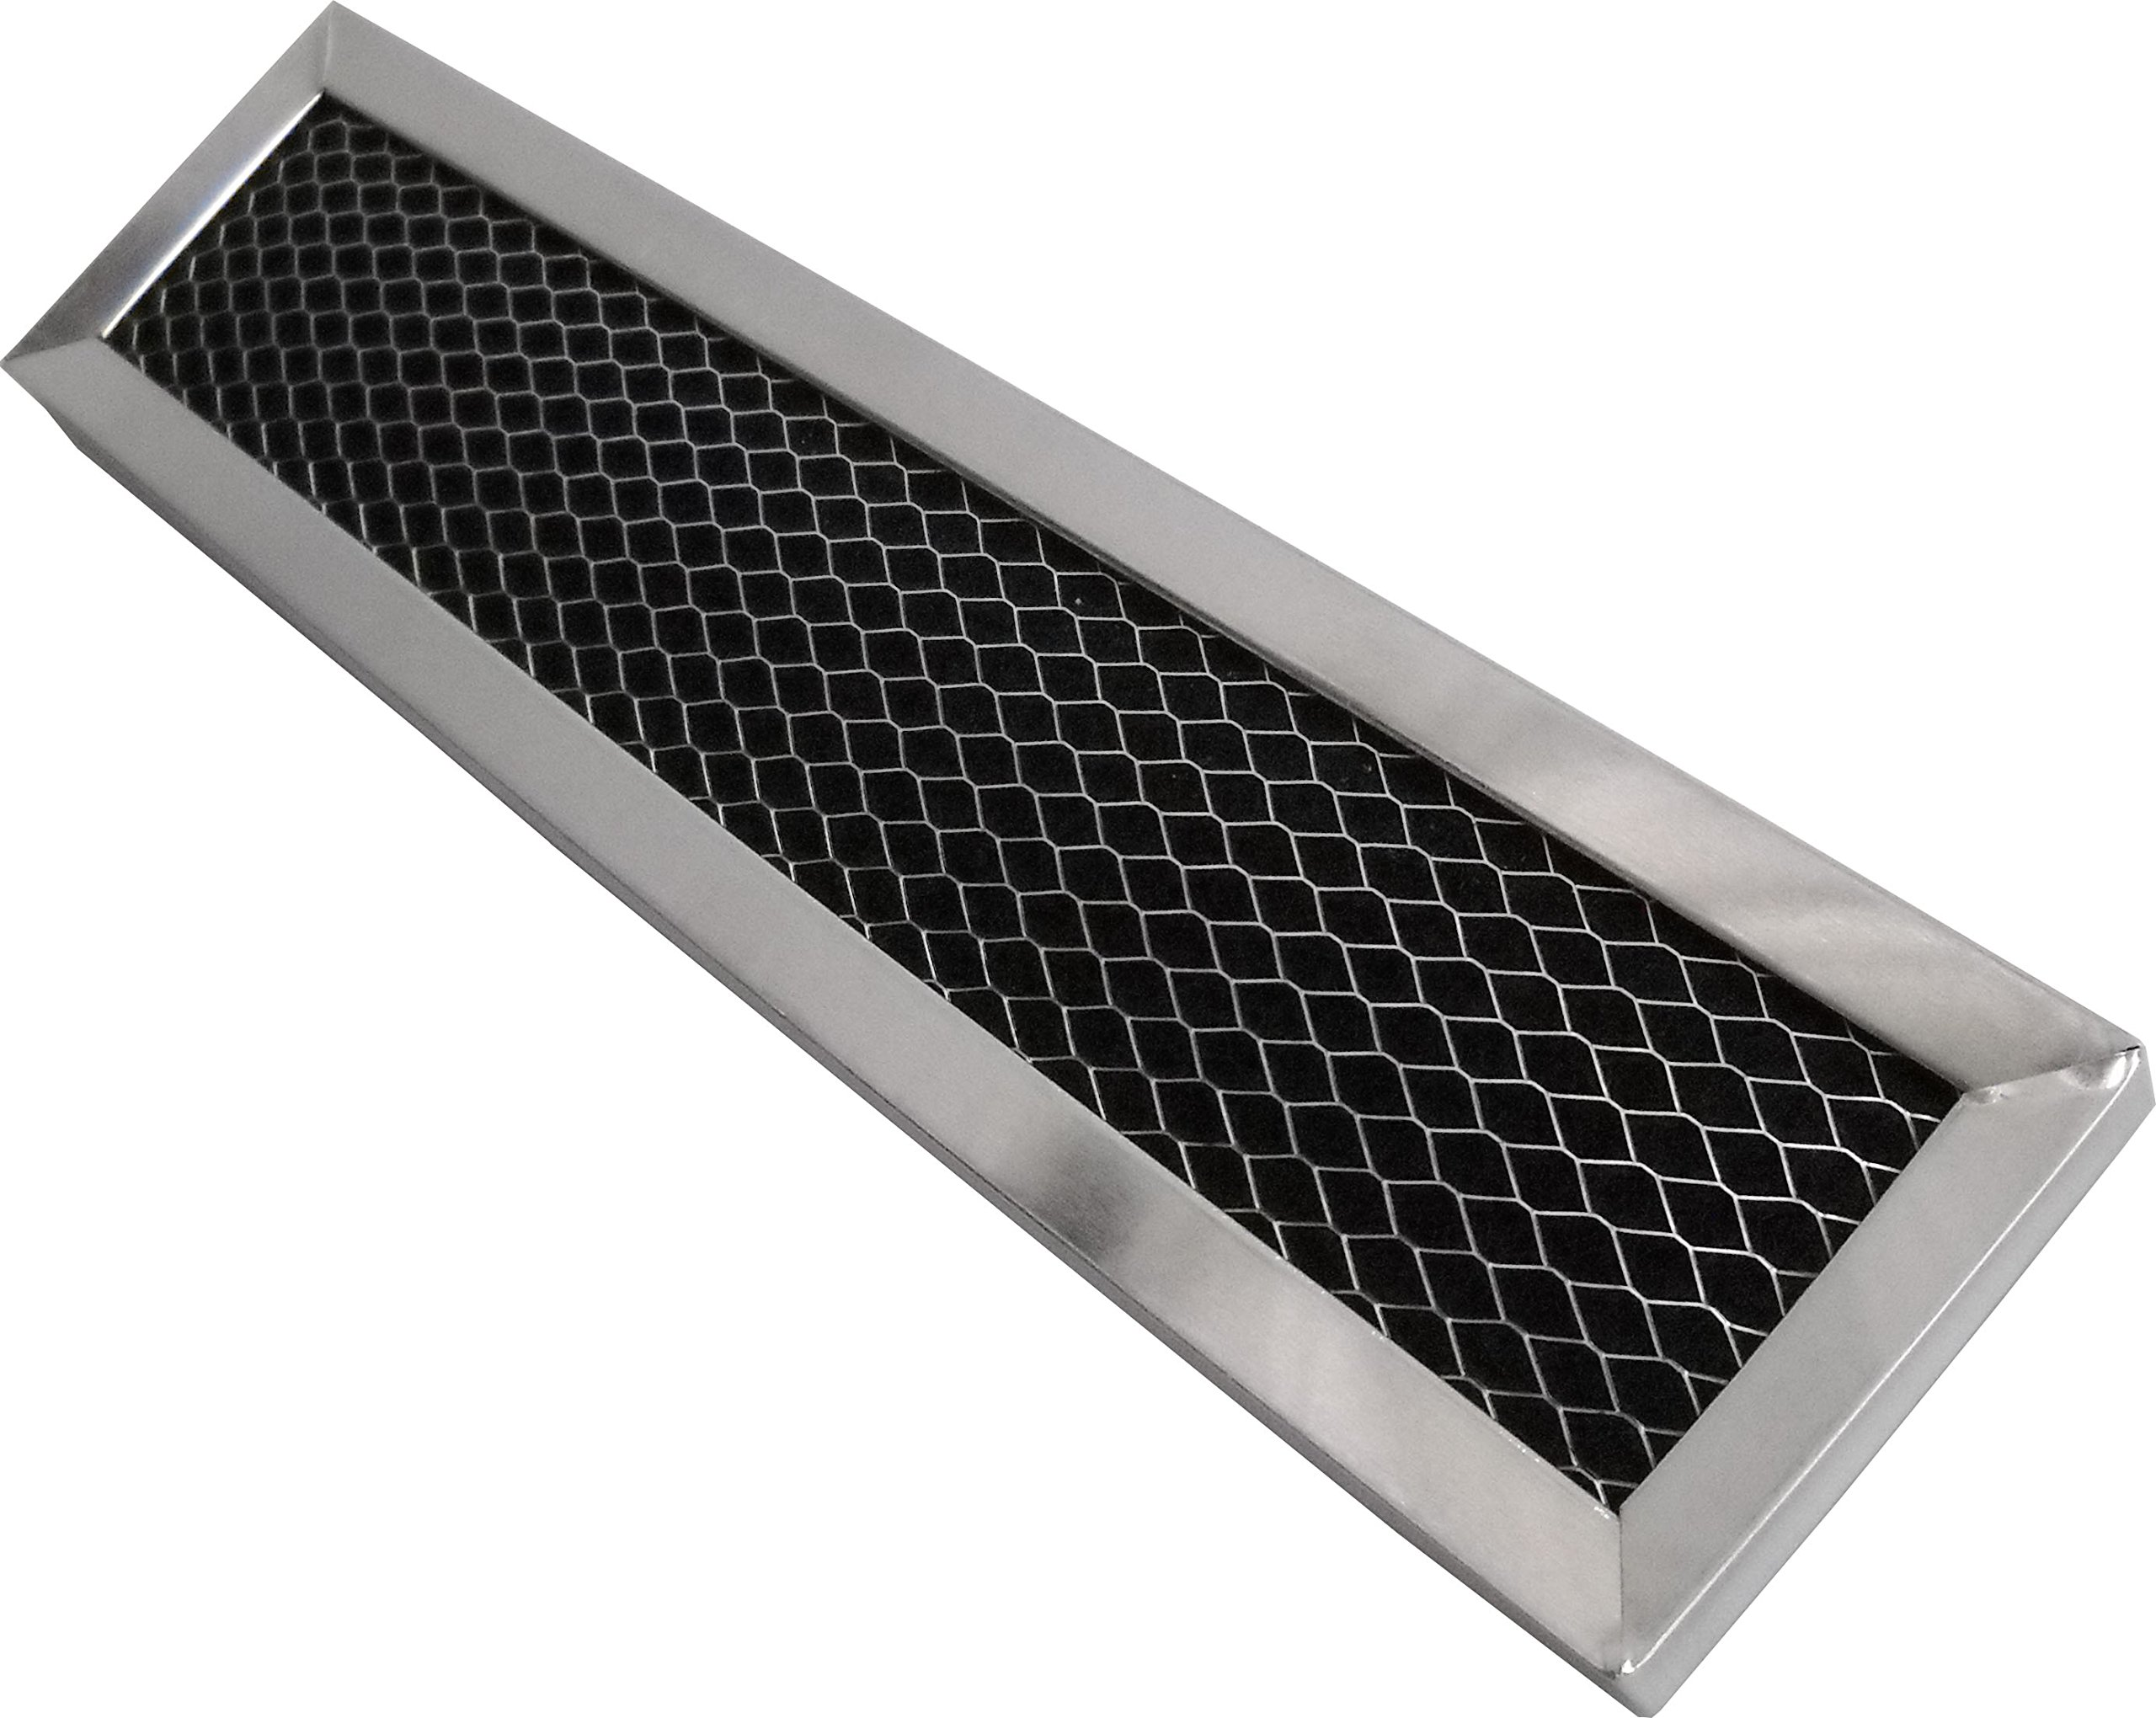 JX81D WB02X10943 Charcoal Filter Replacement for GE